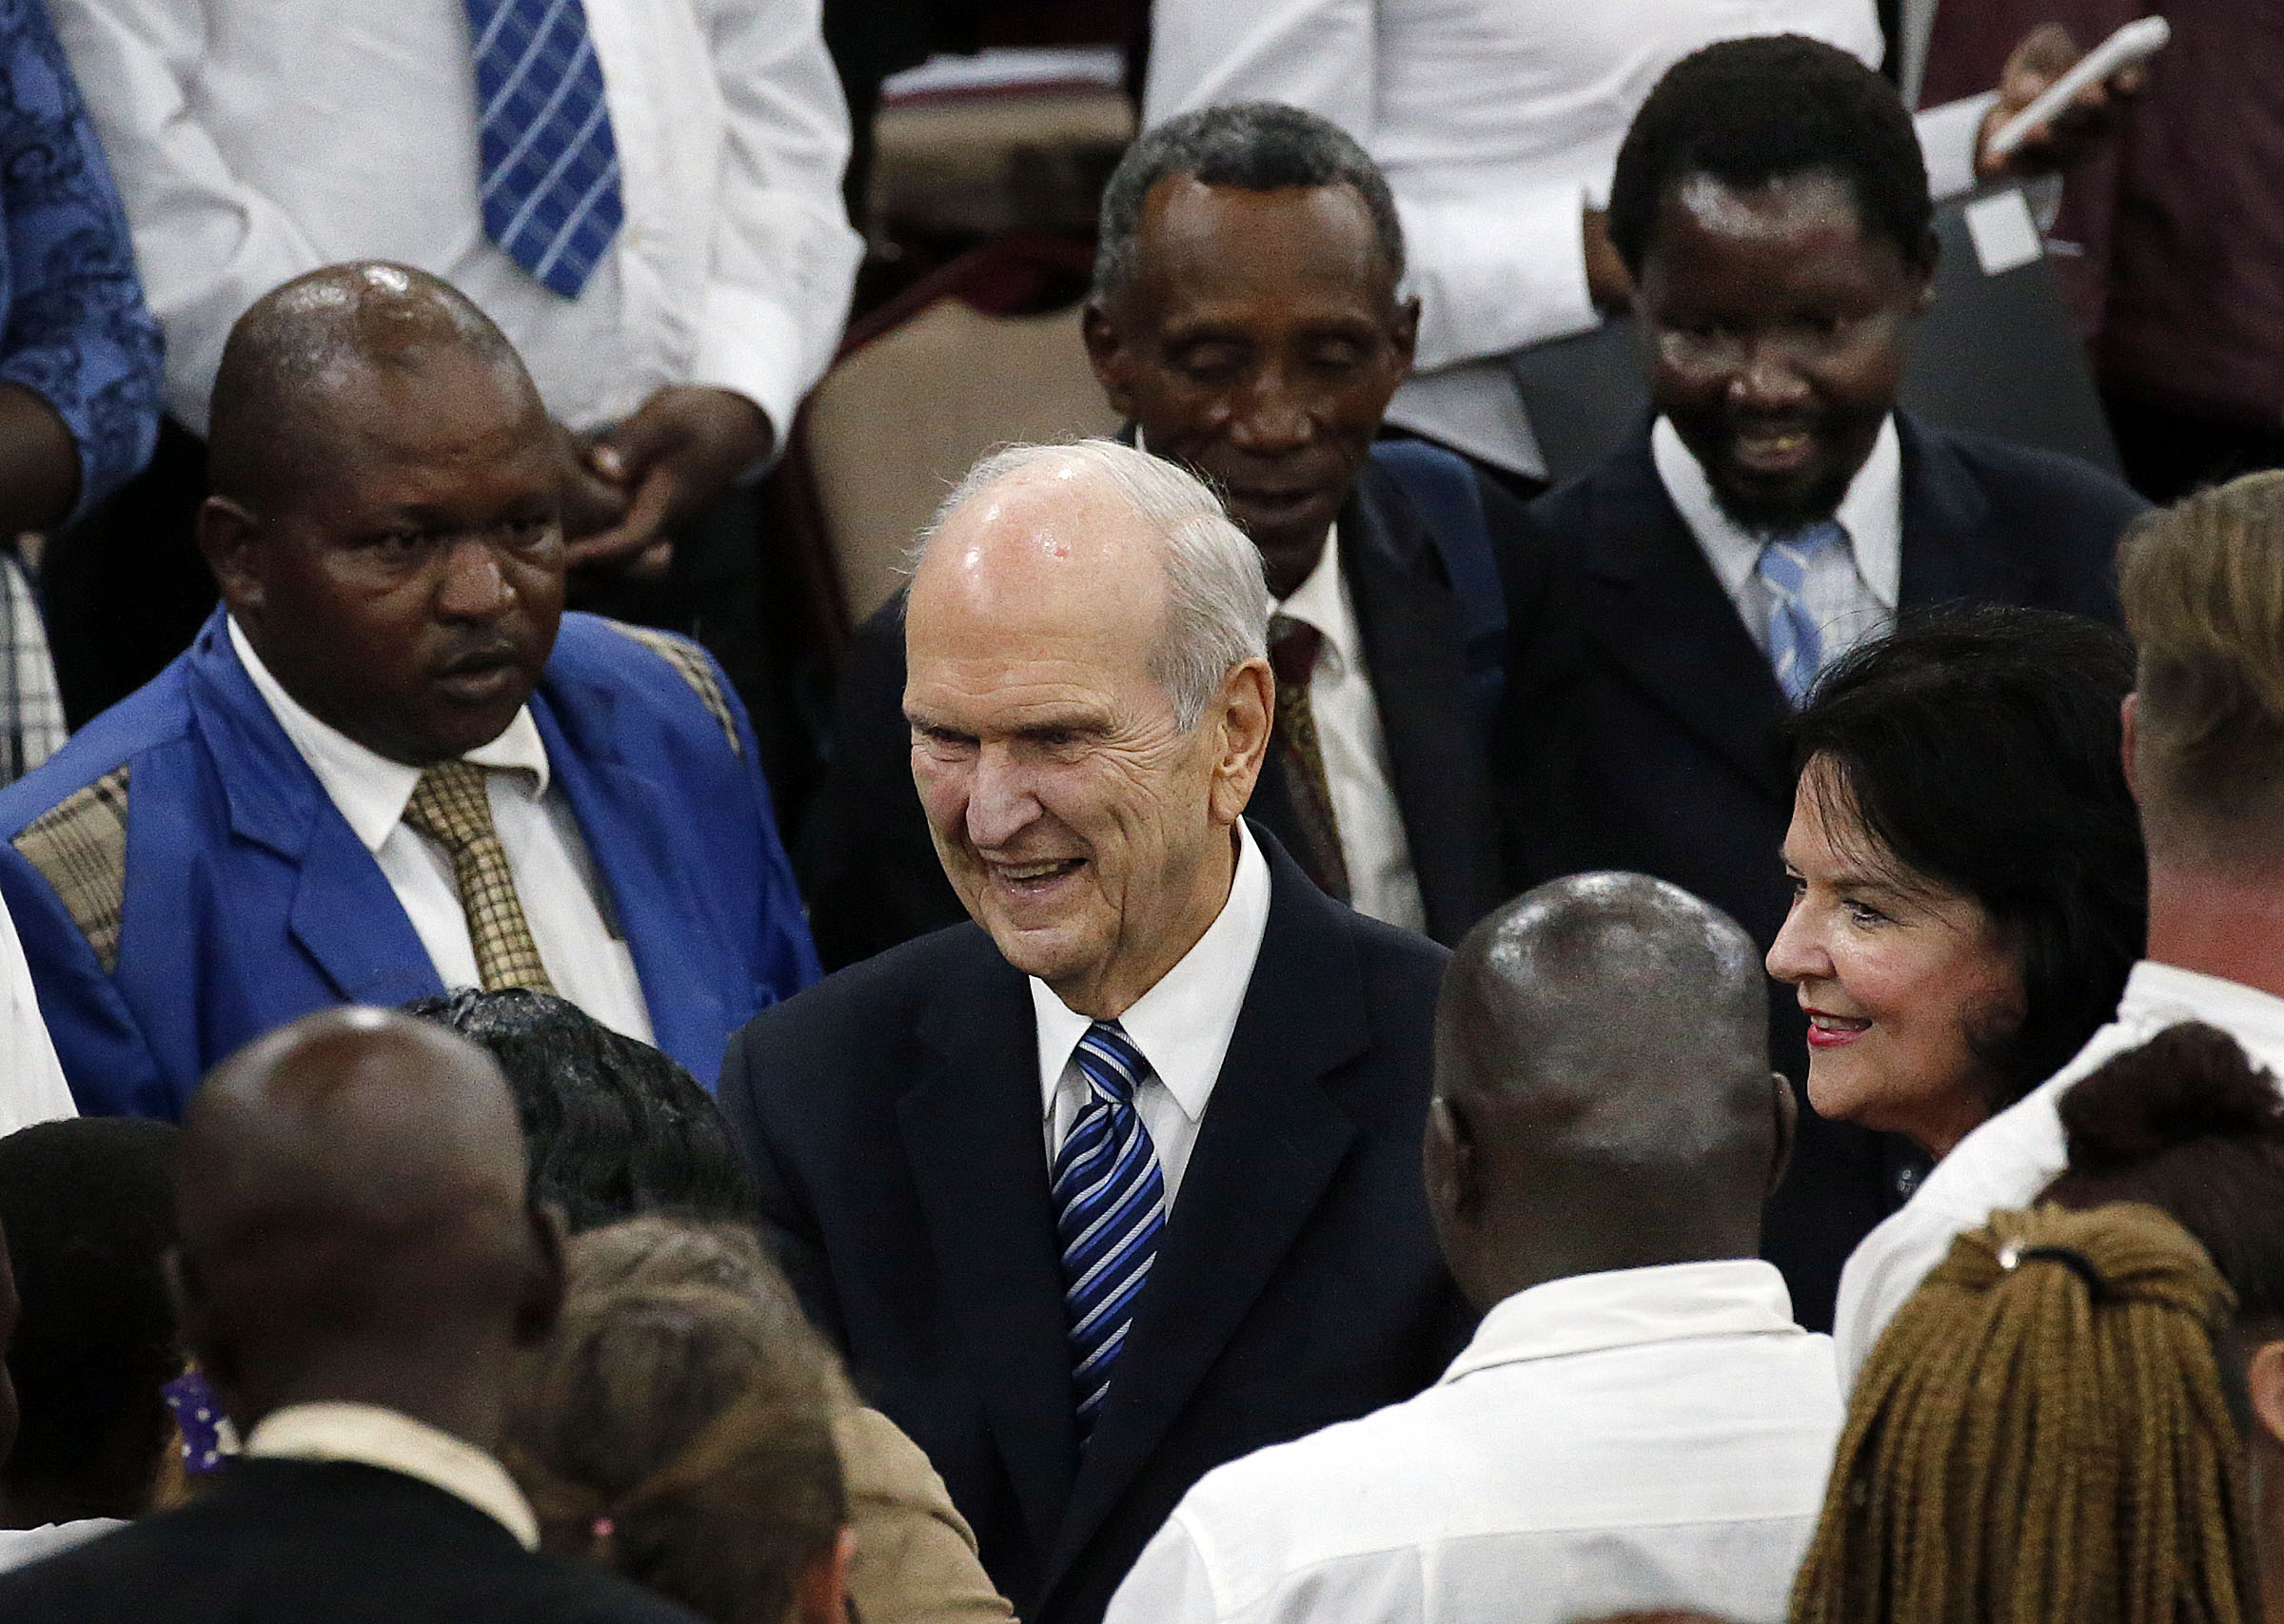 President Russell M. Nelson and Sister Wendy Watson Nelson greet some of those in attendance following a special devotional in Nairobi, Kenya, on Monday, April 16, 2018.